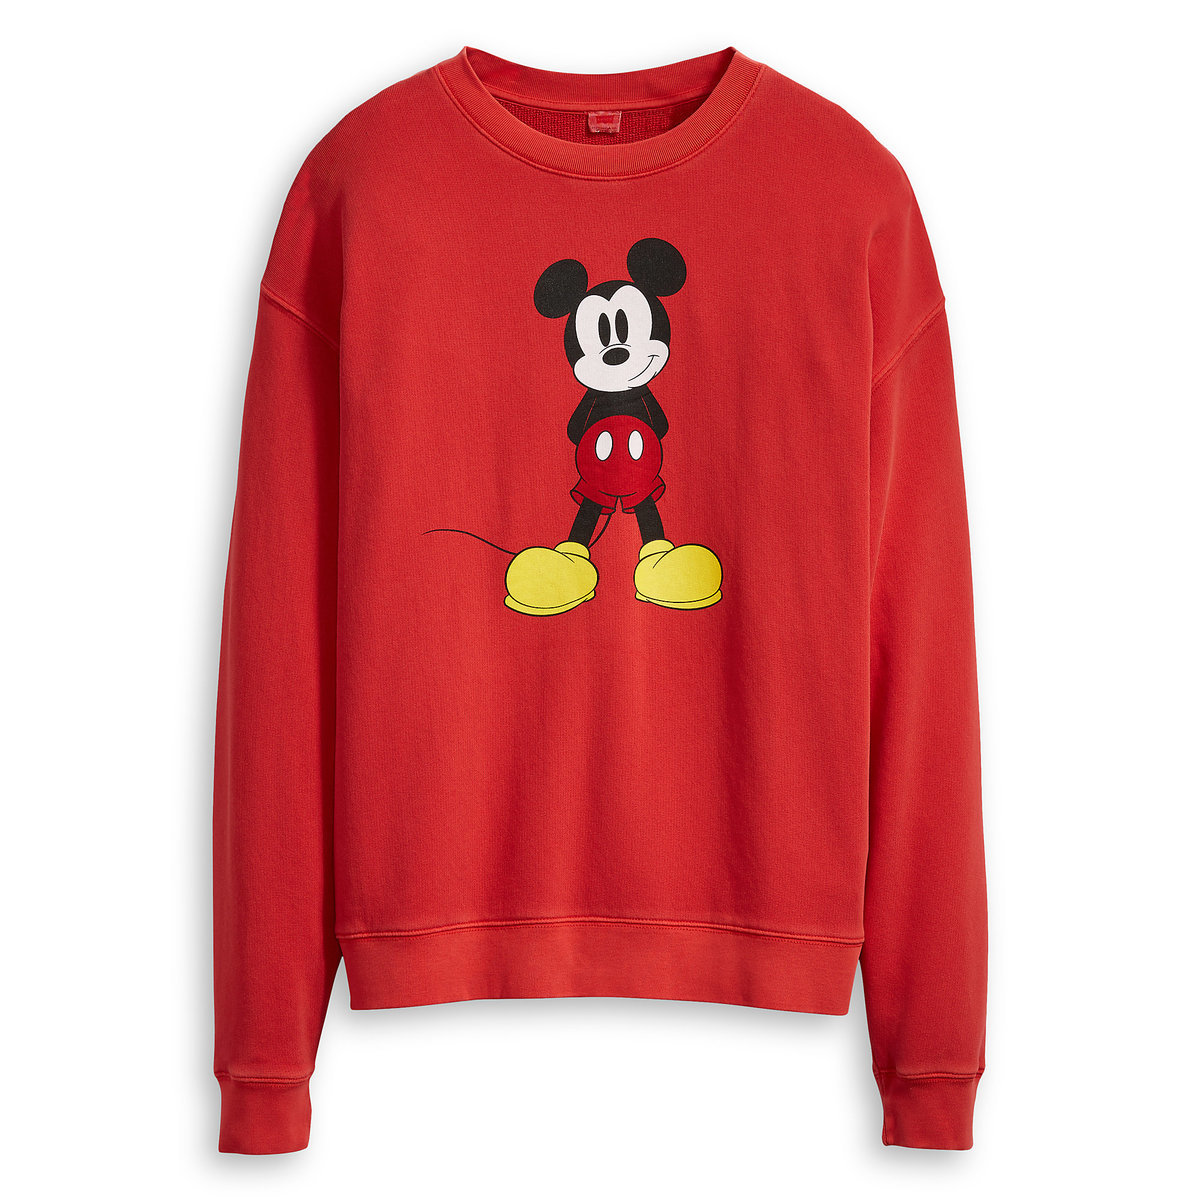 c36d0f9d3db5 Mickey Mouse Sweatshirt for Women by Levi s - Red